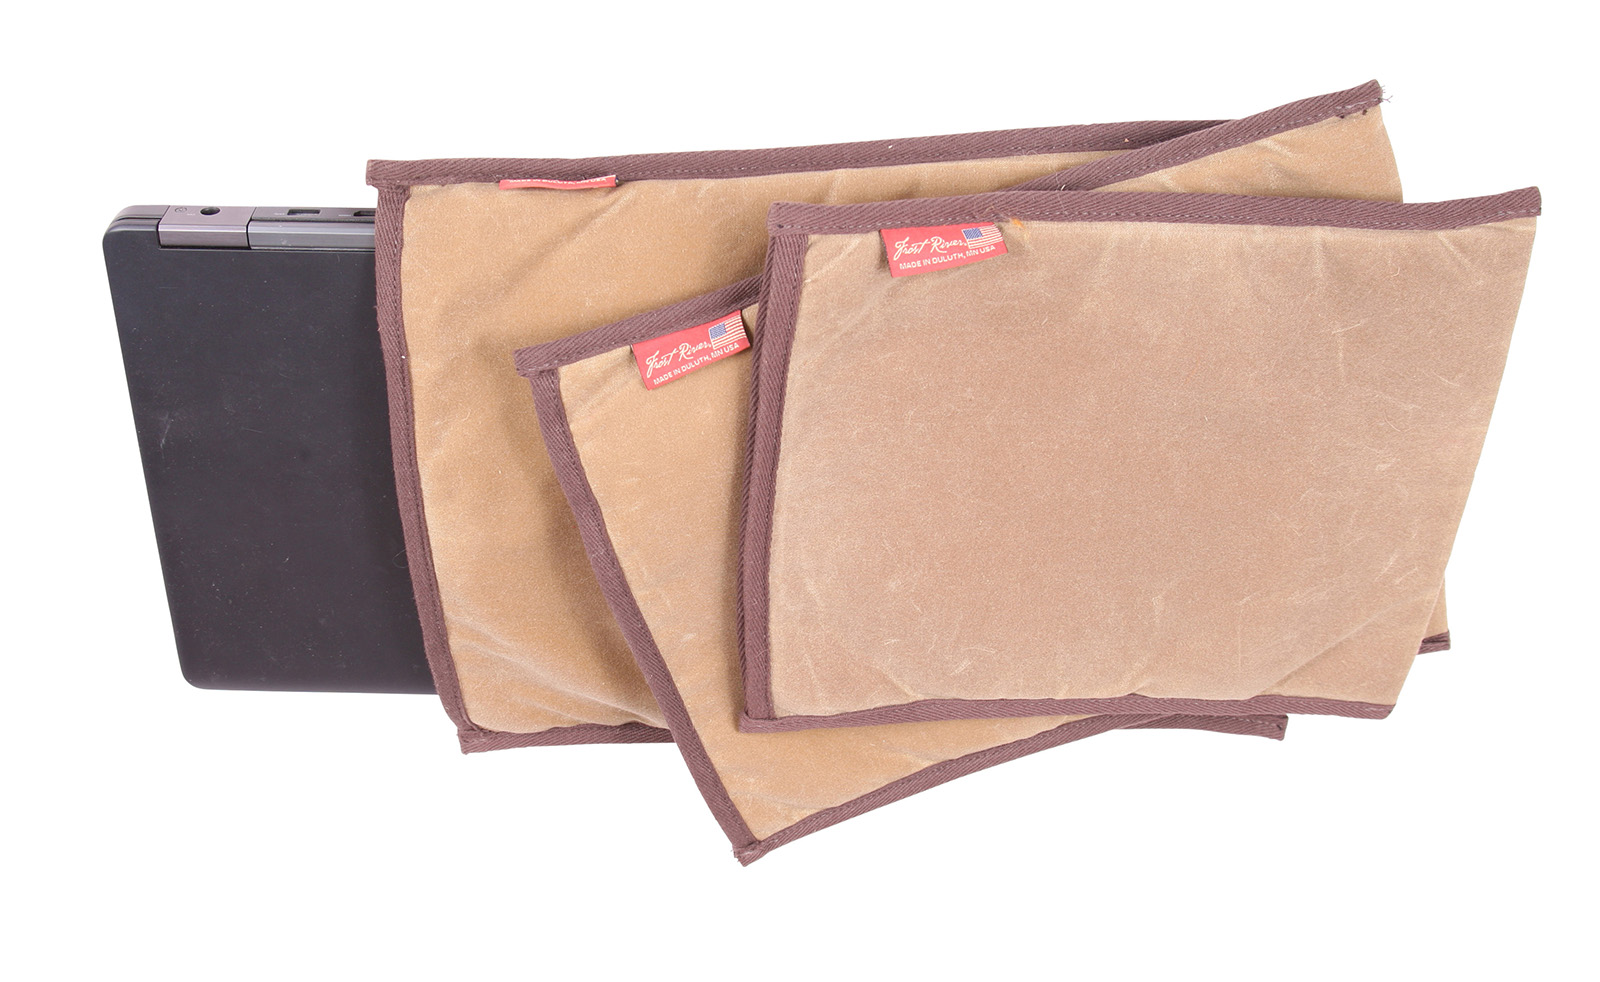 Frost River - Lap Top Sleeve Large